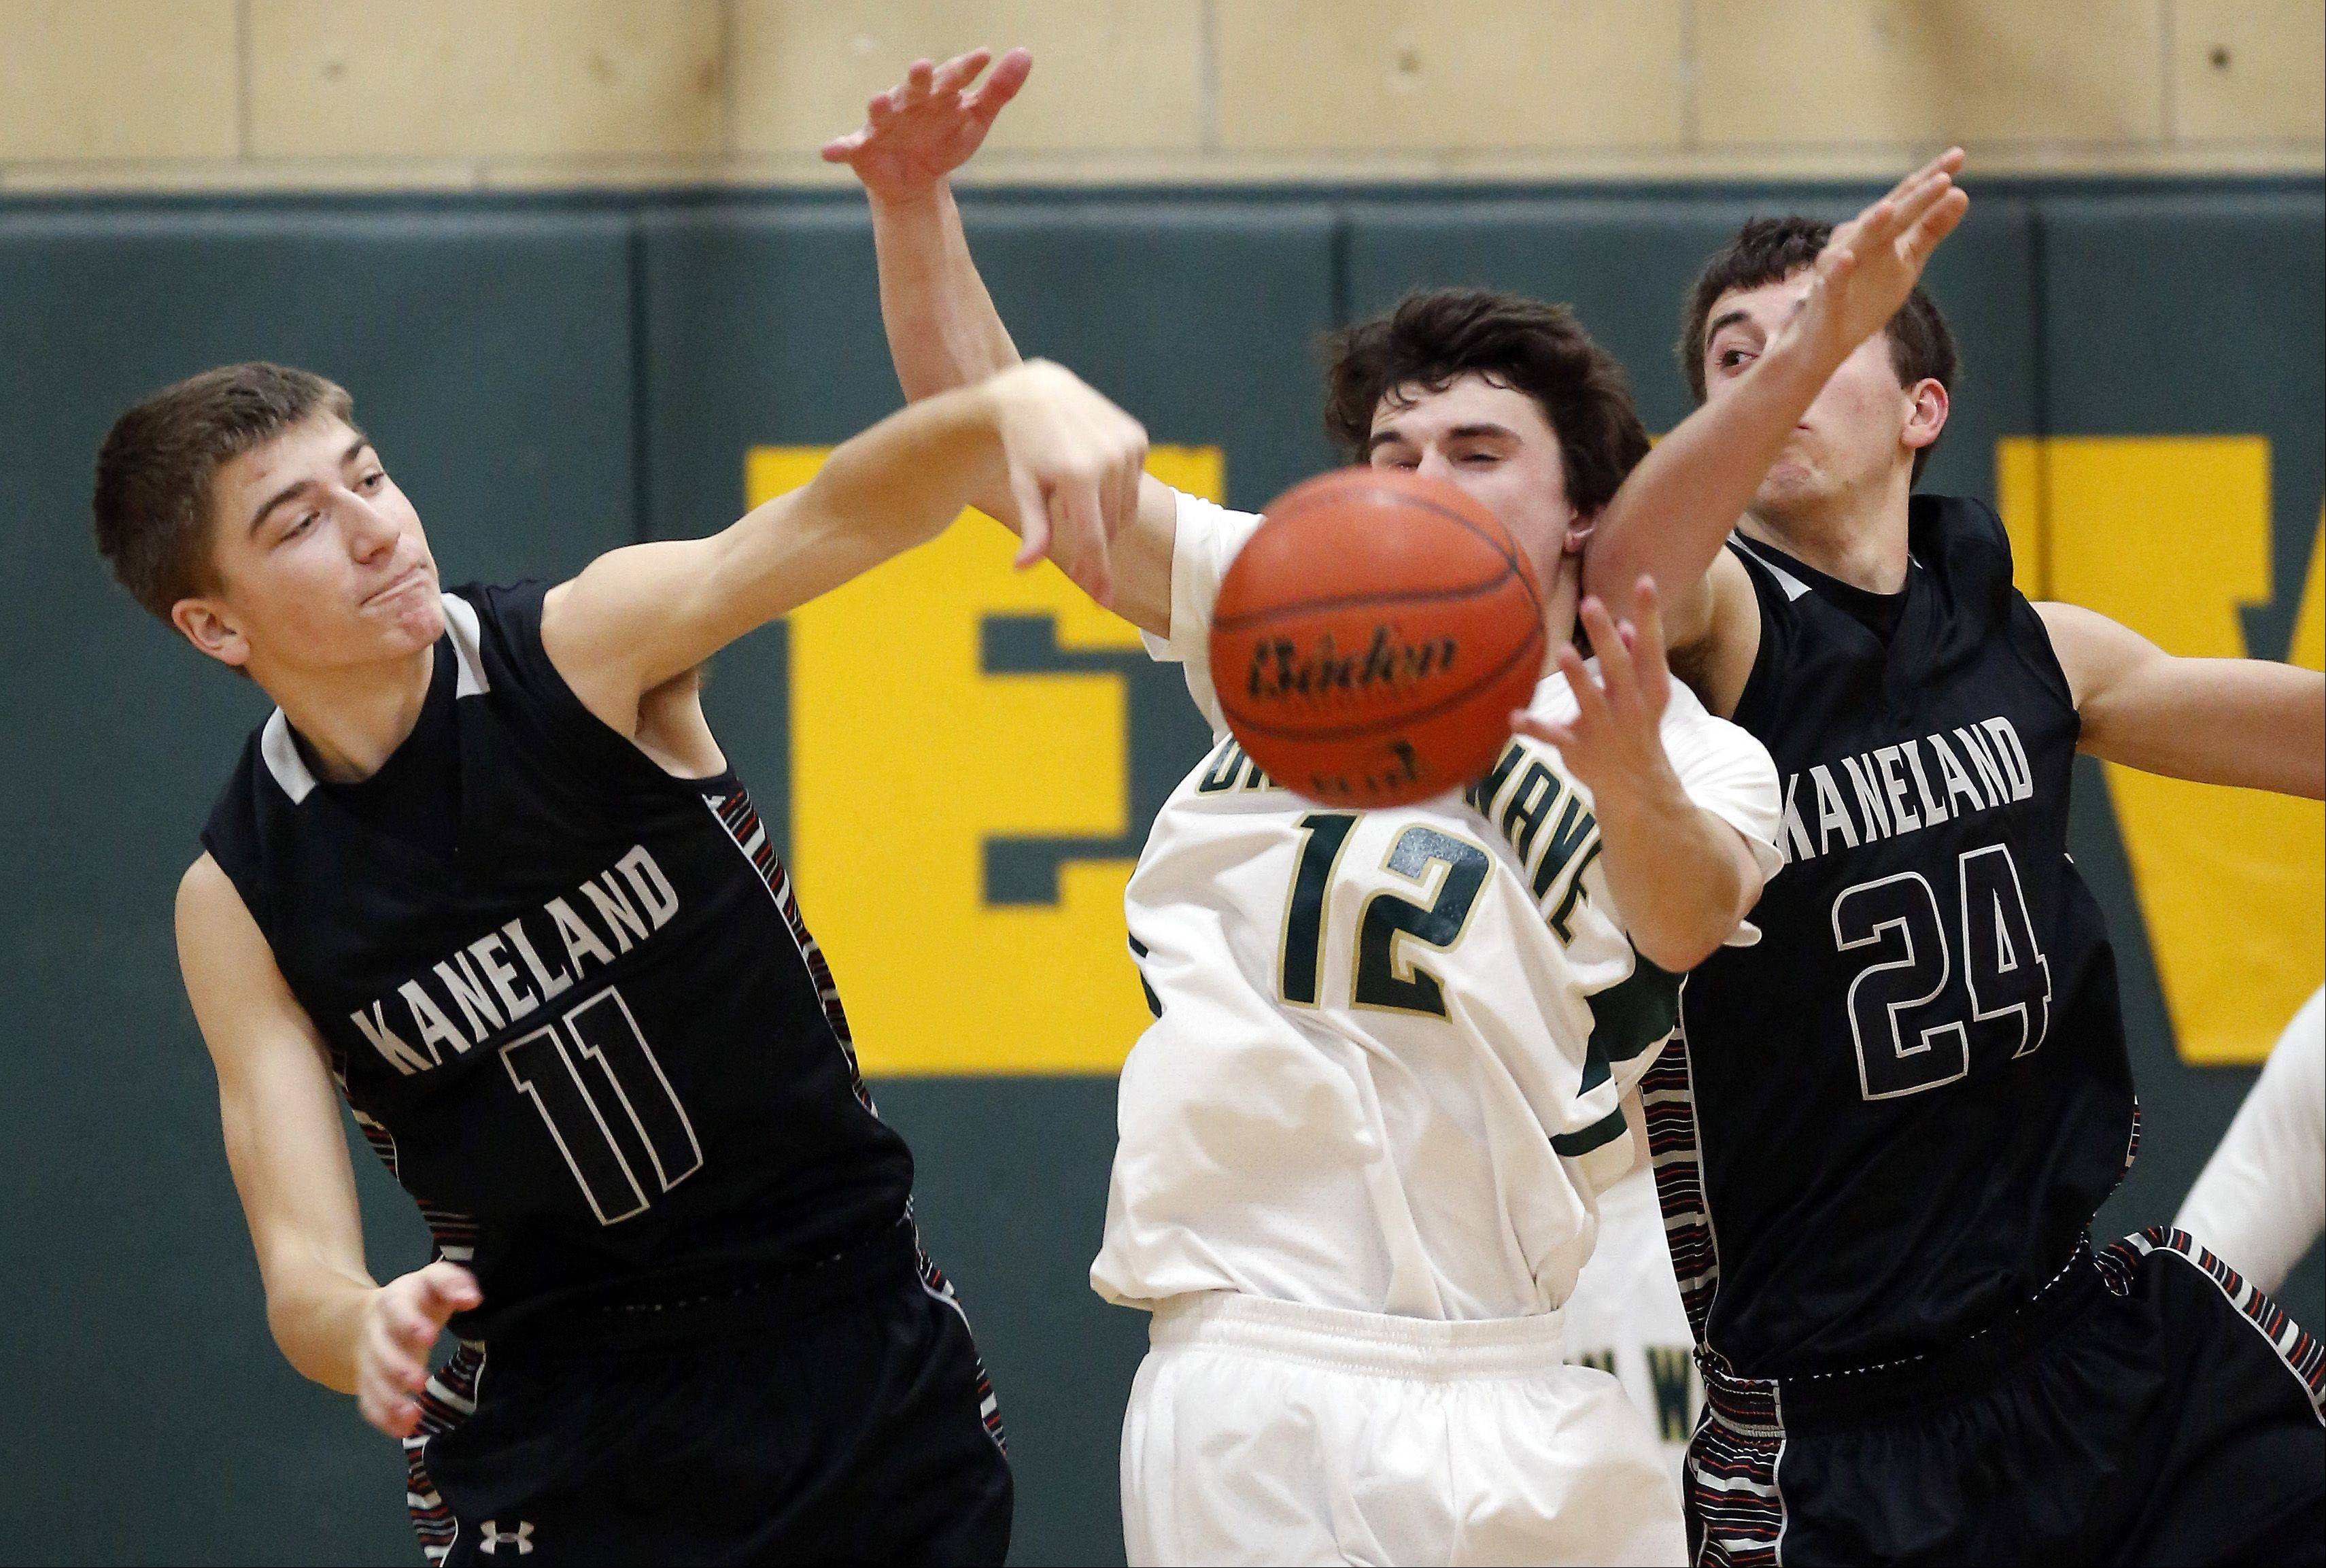 Kaneland's Steven Limbrunner (11) and Ryan David (24) battle St. Edward's Joseph French (12) Friday in Elgin.